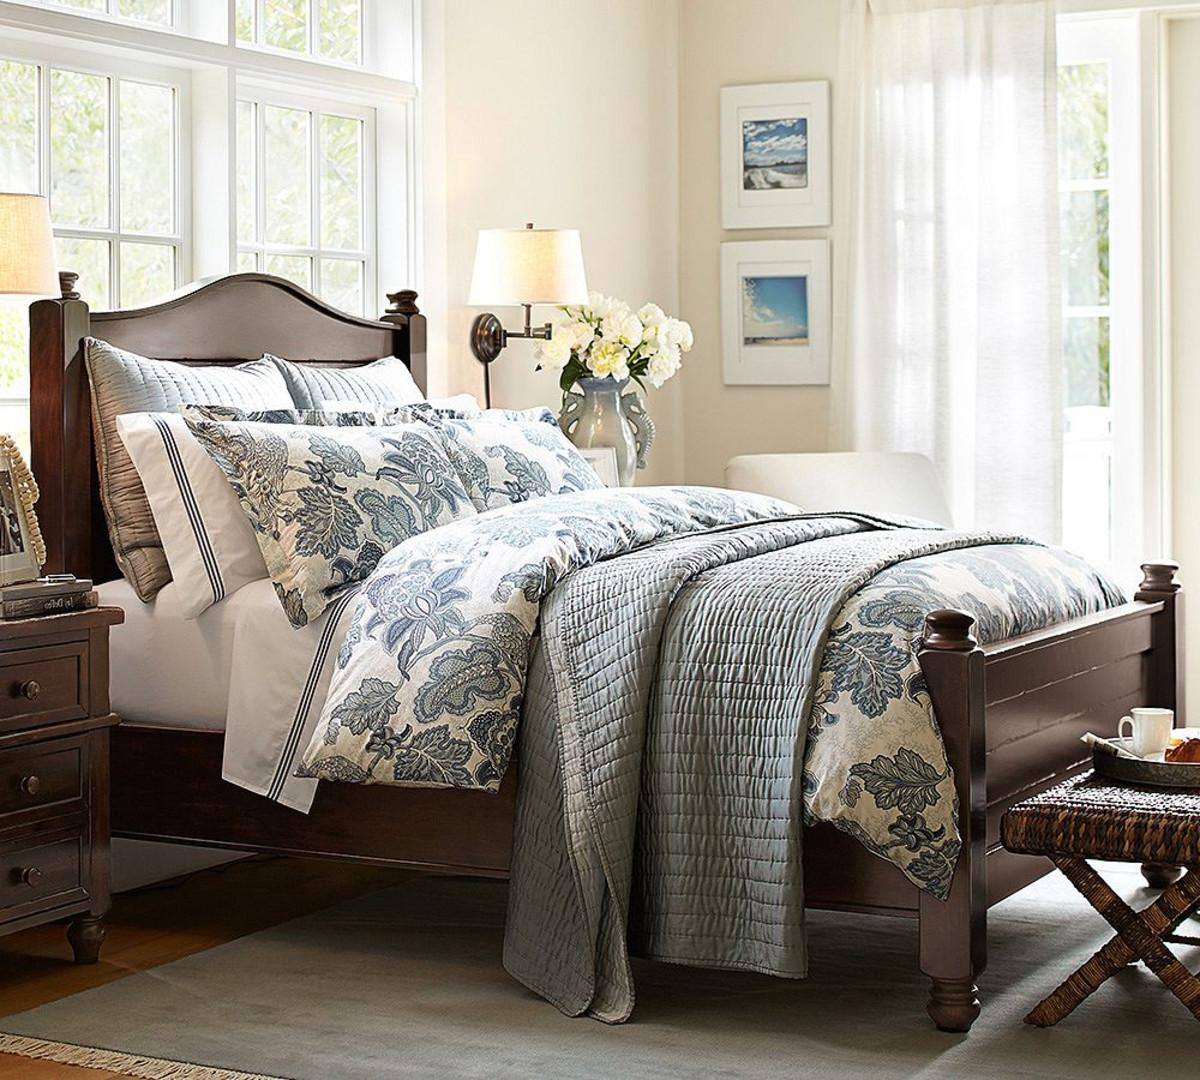 Bedroom Furniture Bedroom Furniture Sets Pottery Barn